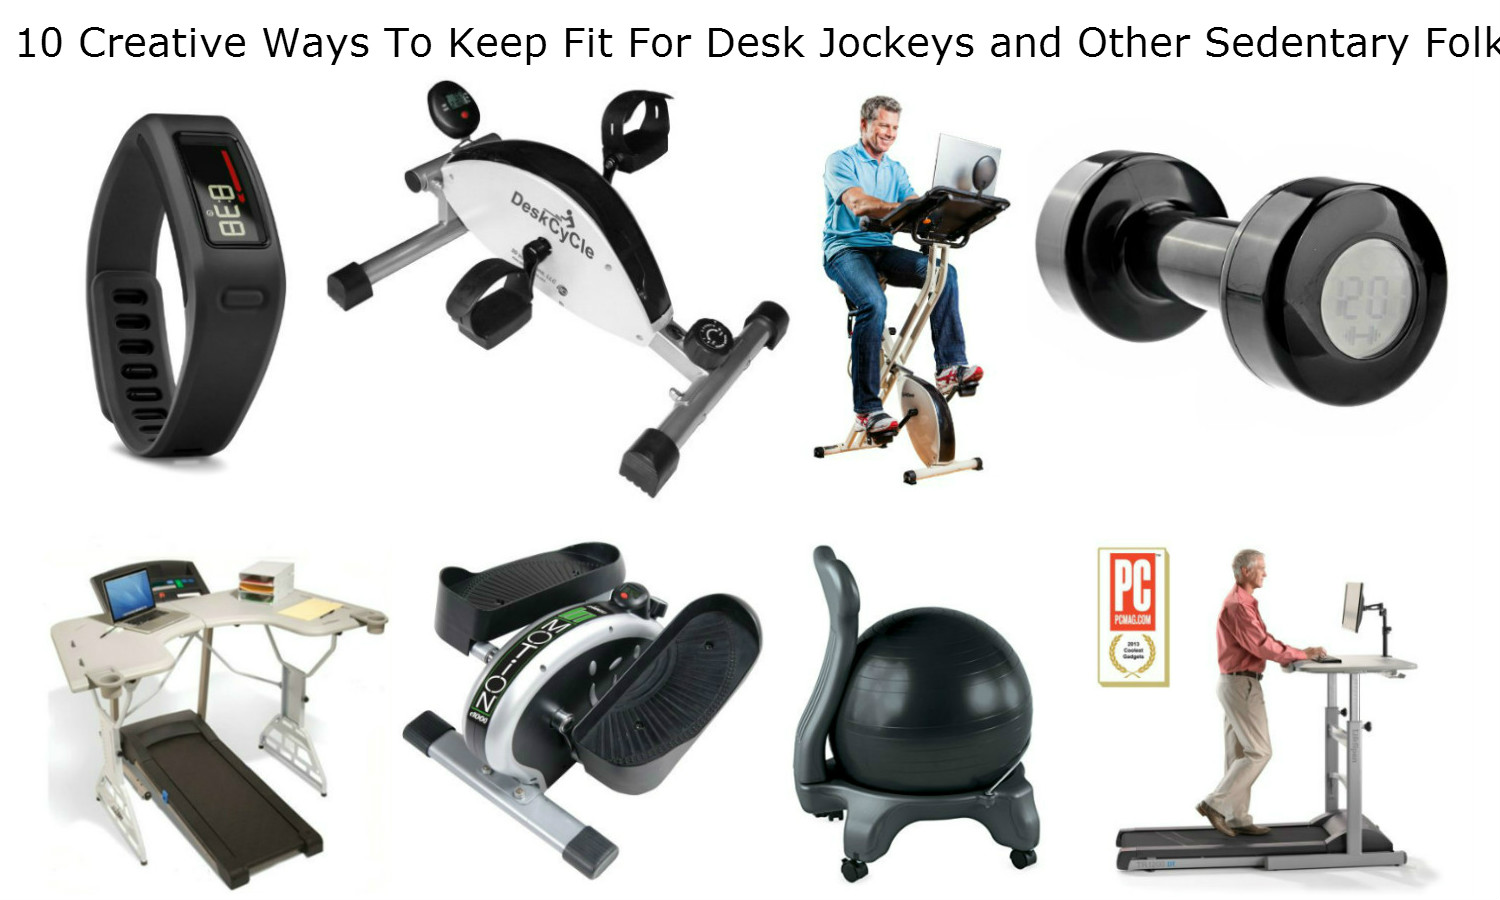 10 Creative Ways To Keep Fit For Desk Jockeys and Other ...